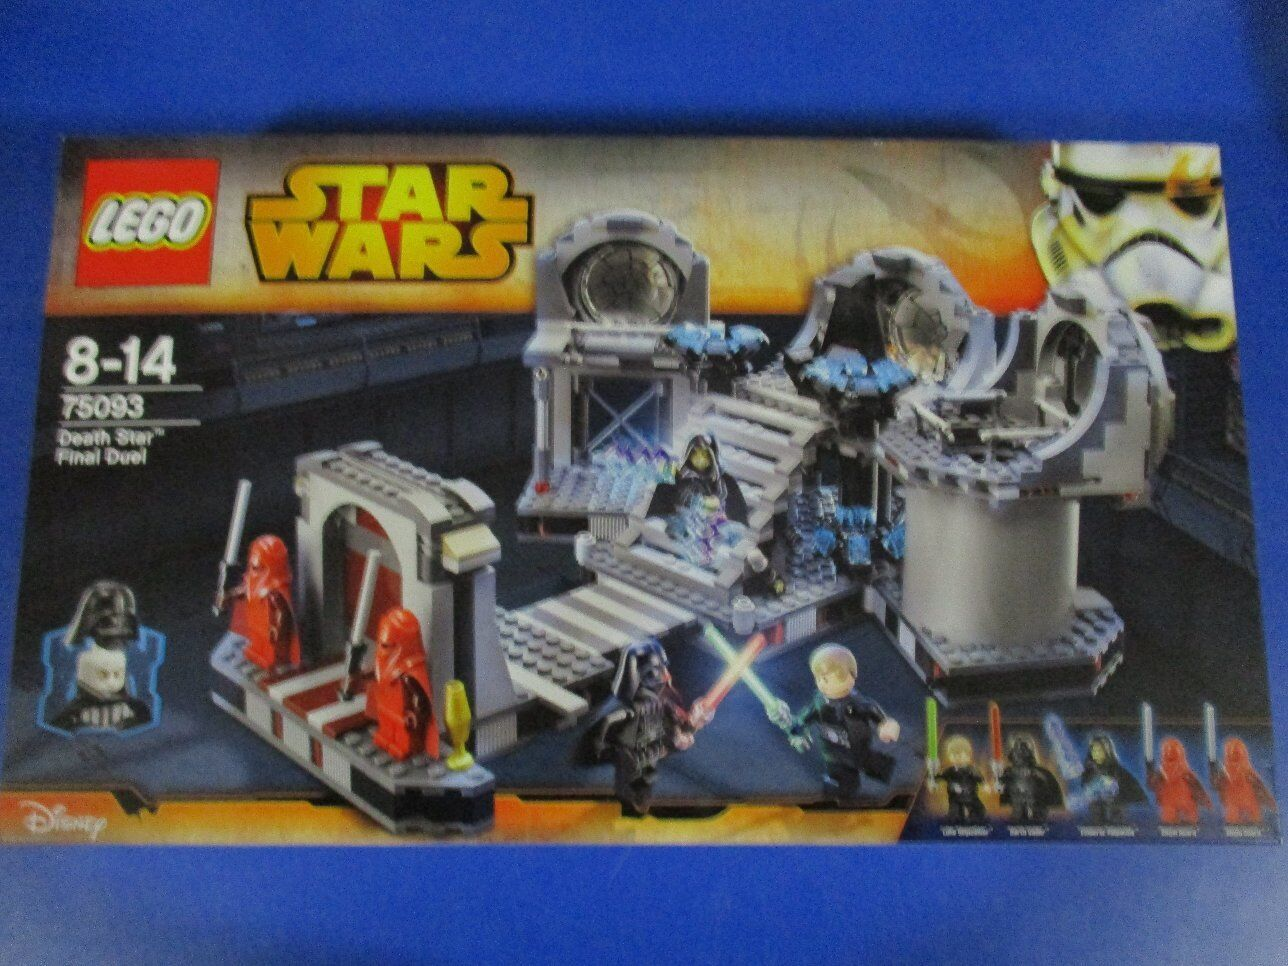 LEGO Star Wars 75093 Death Star Final Duel NEU OVP